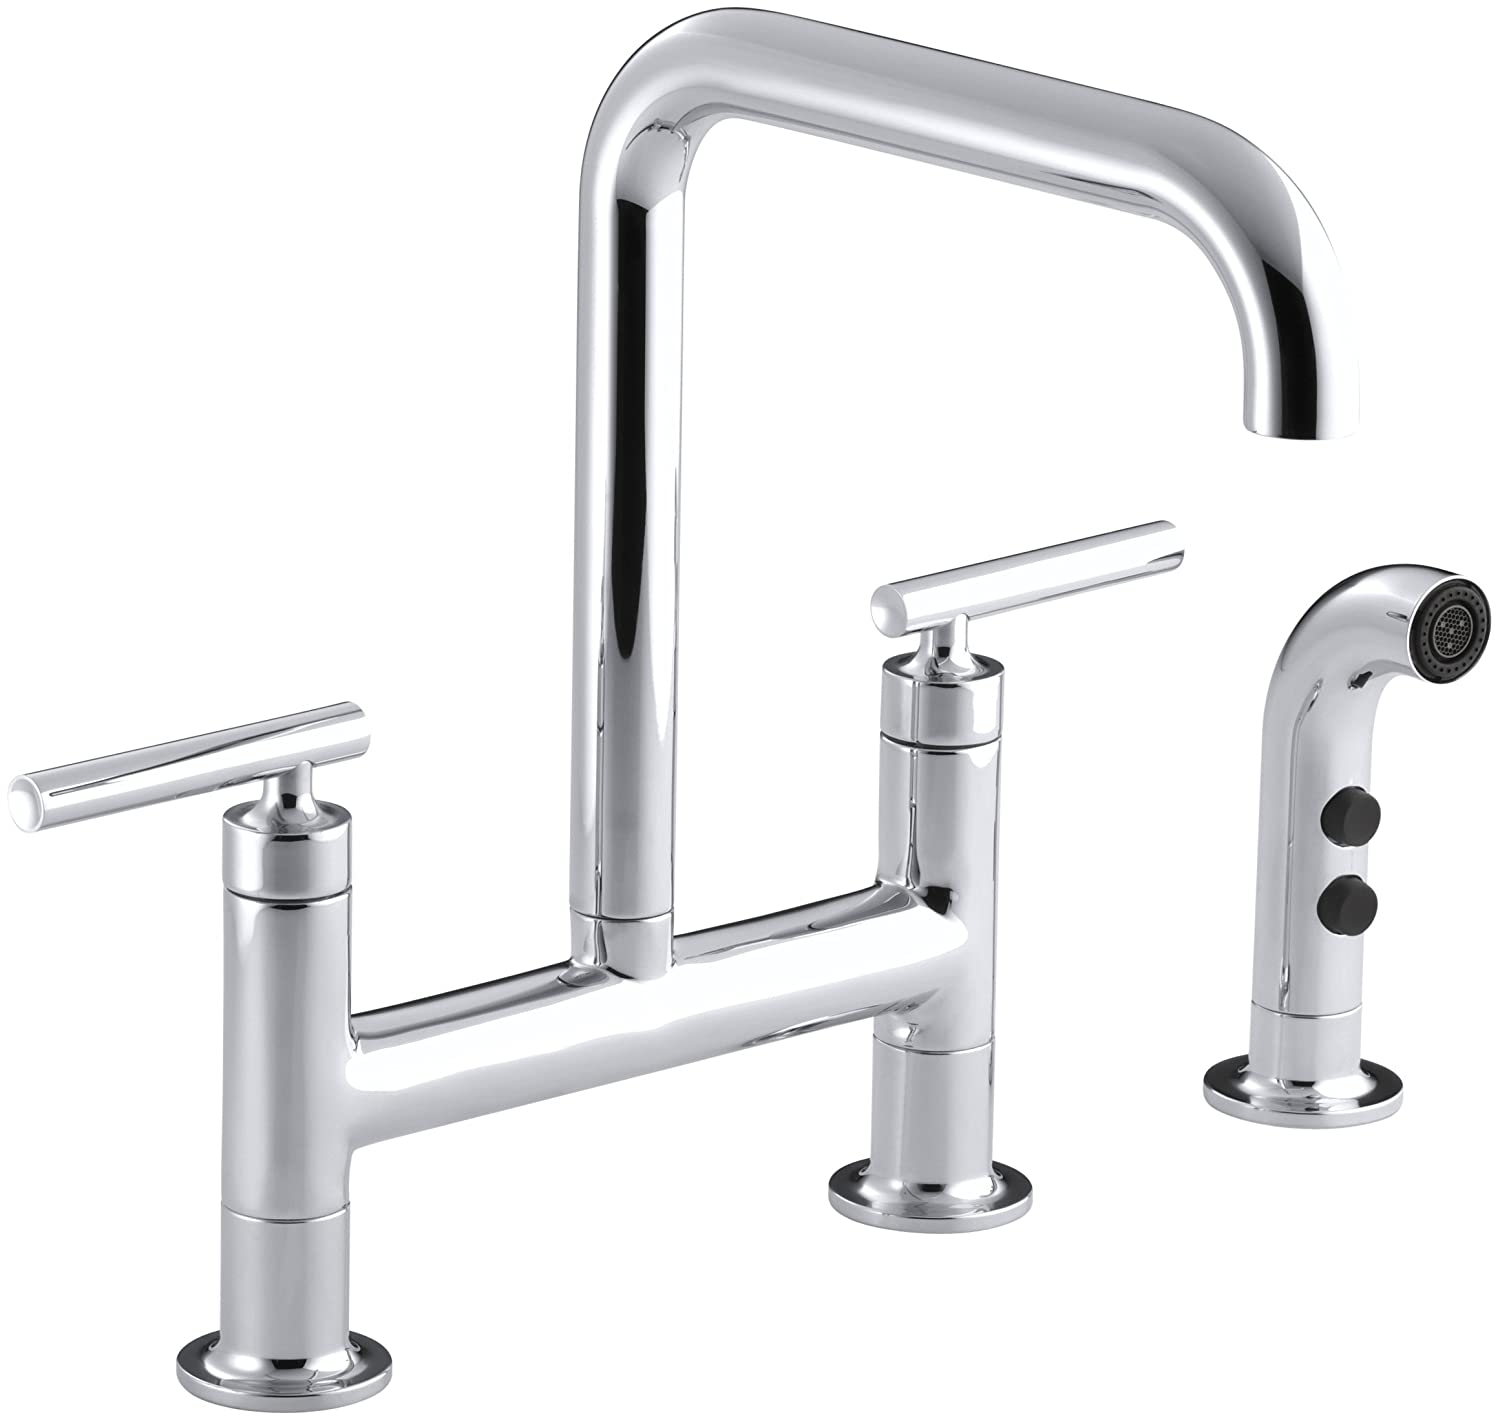 KOHLER K-7548-4-CP Purist Deck-Mount Bridge Faucet with Sidespray ...